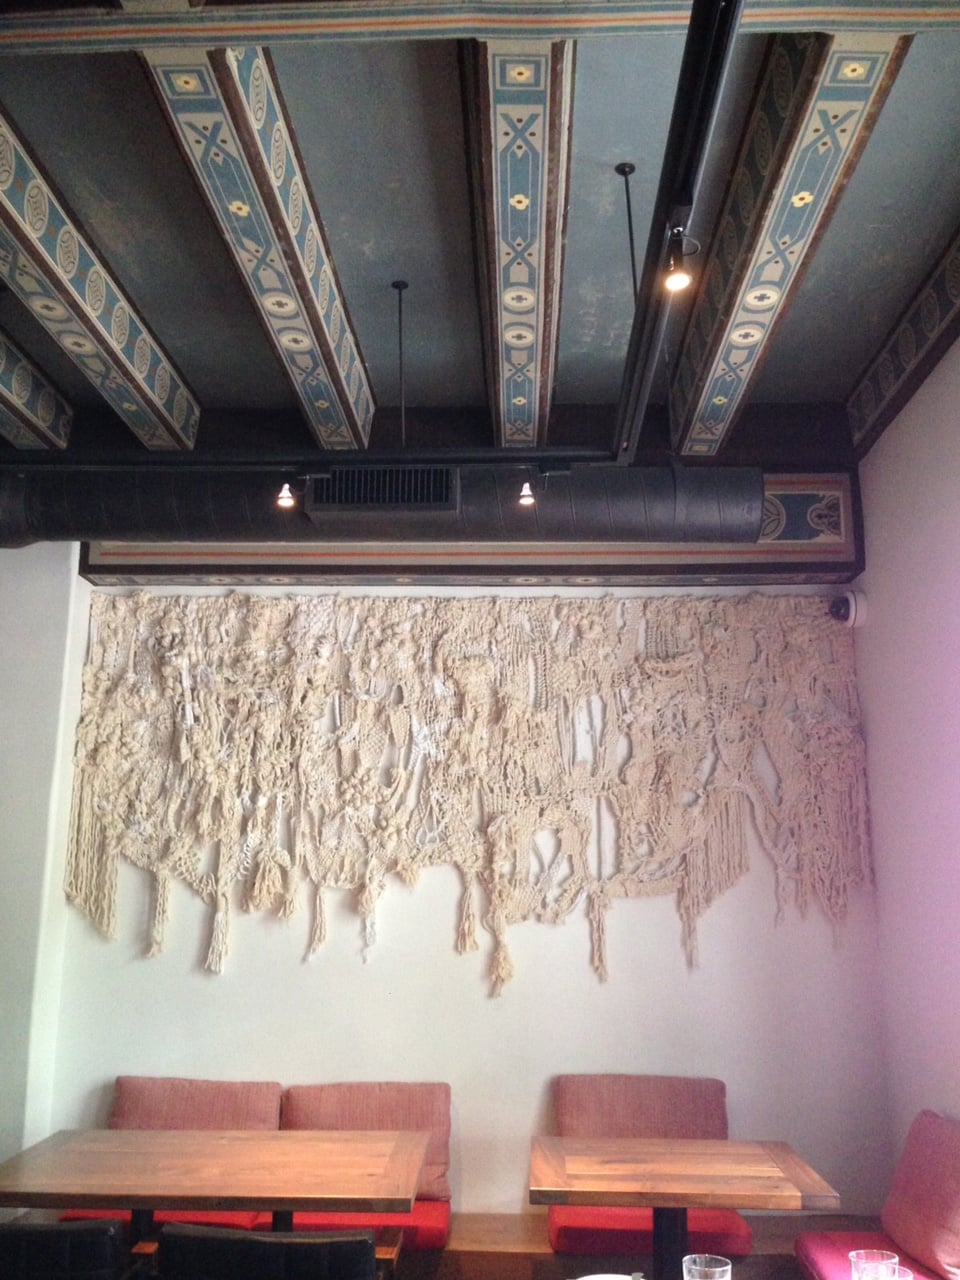 Cotton rope and twine wall hanging commissioned for Redbird, Los Angeles, 2015